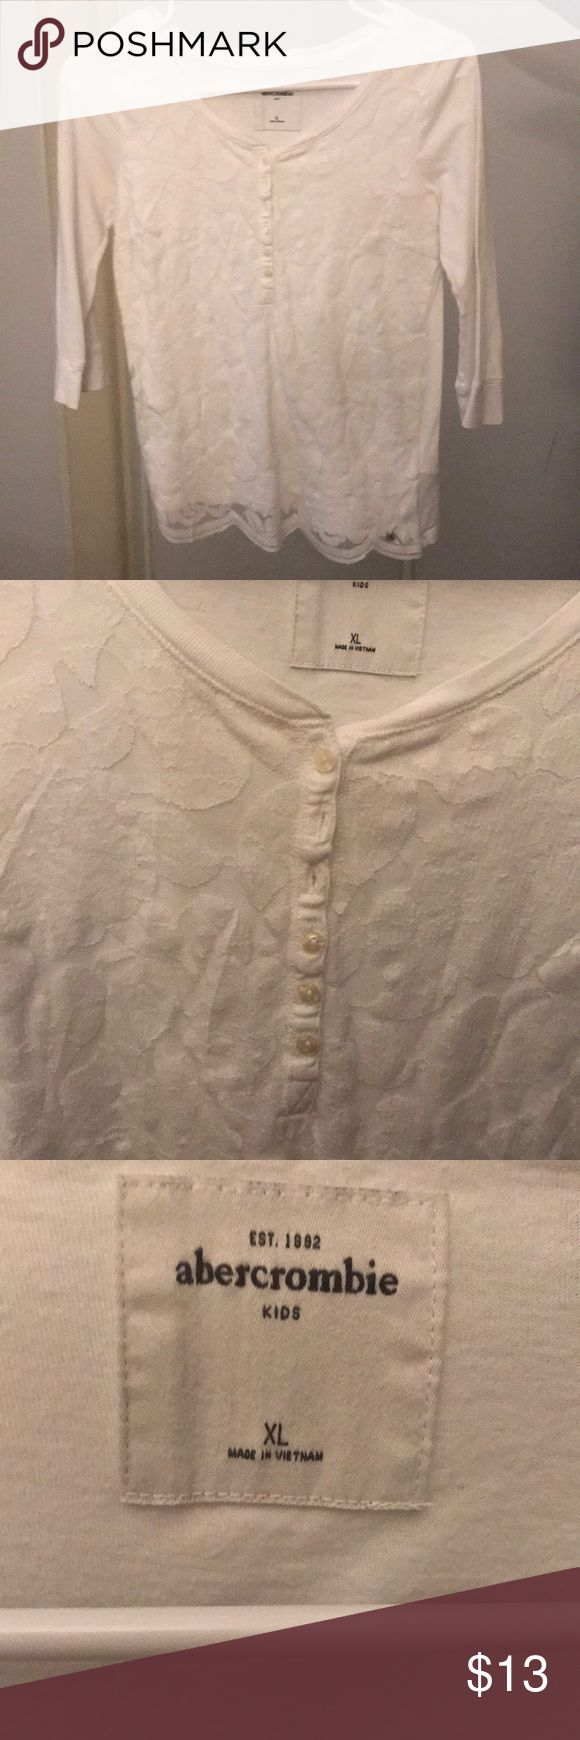 White Lace Blouse White Lace Blouse from Abercrombie kids XL abercrombie kids Shirts & Tops Blouses